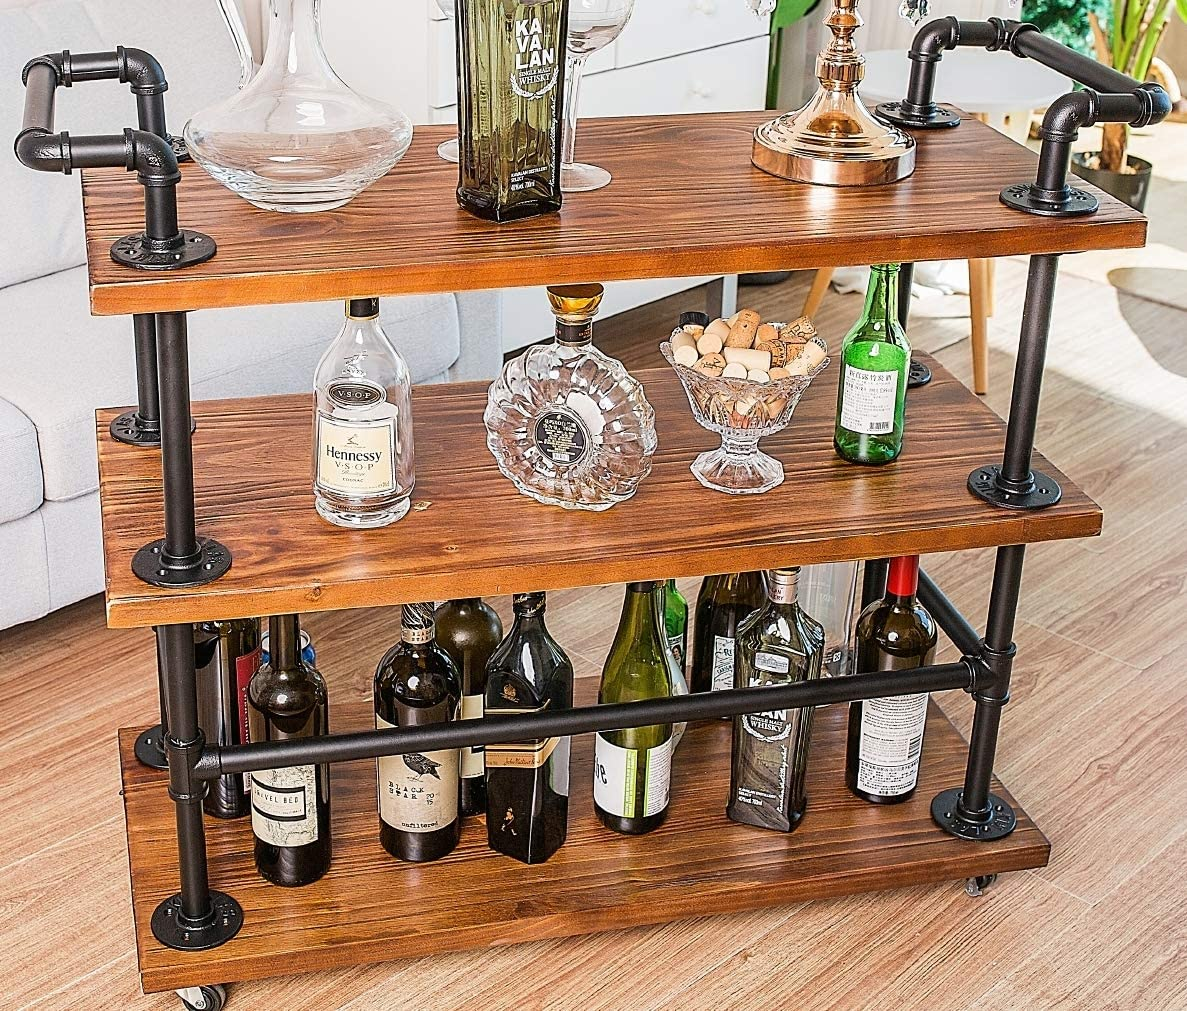 DOFURNILIM Best Bar Carts Serving Carts Kitchen Carts Wine Rack Carts on Wheels with Storage – Industrial Rolling Carts – Wine Tea Liqueur Shelves Holder – Solid Wood and Metal Home Furniture